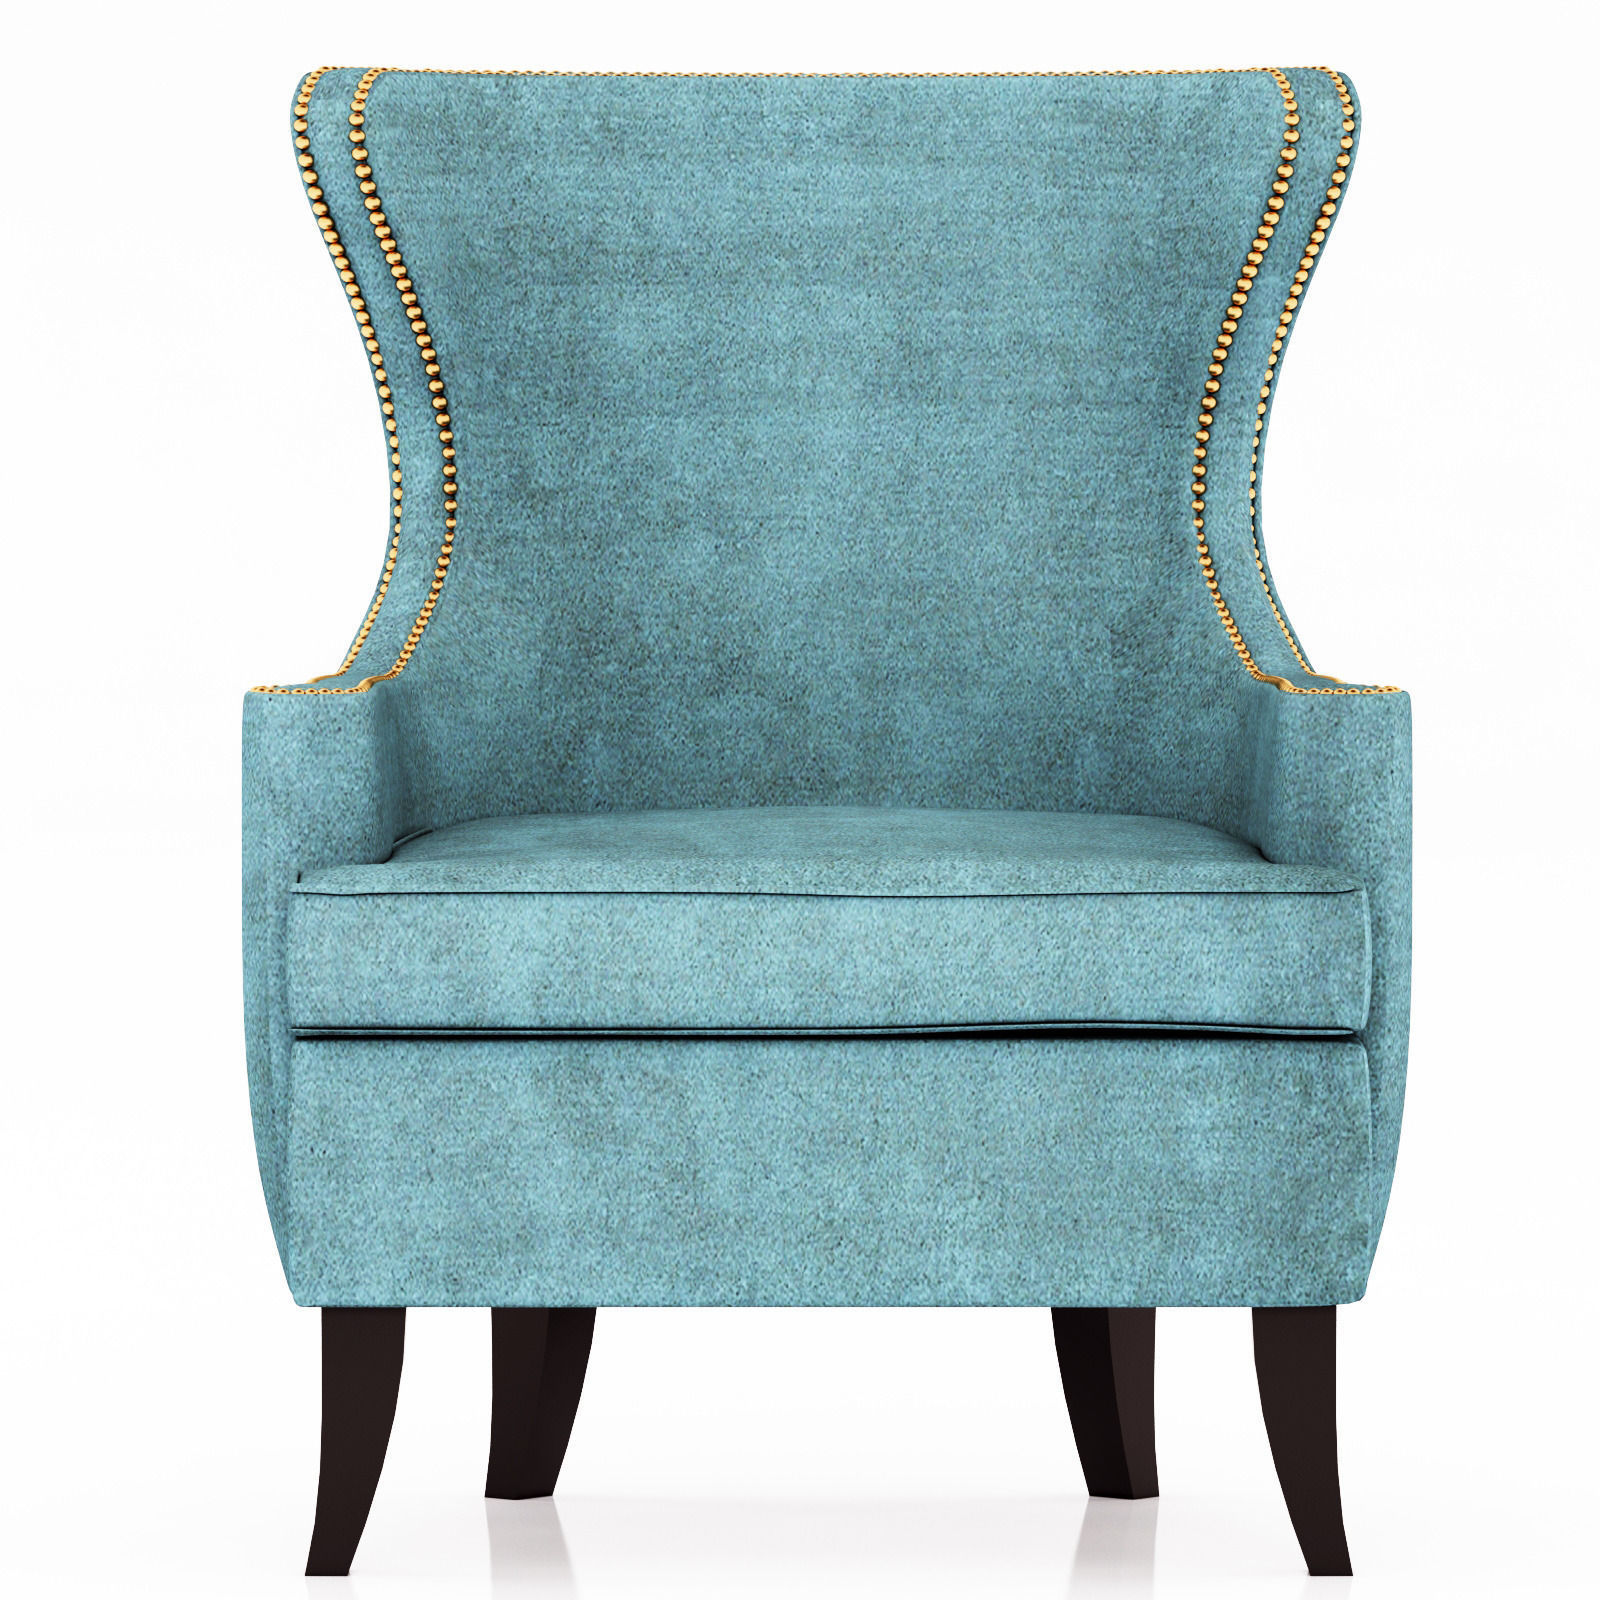 Teal Wingback Chair -  pacific blue elliott wingback chair 3d model max obj fbx mtl 5